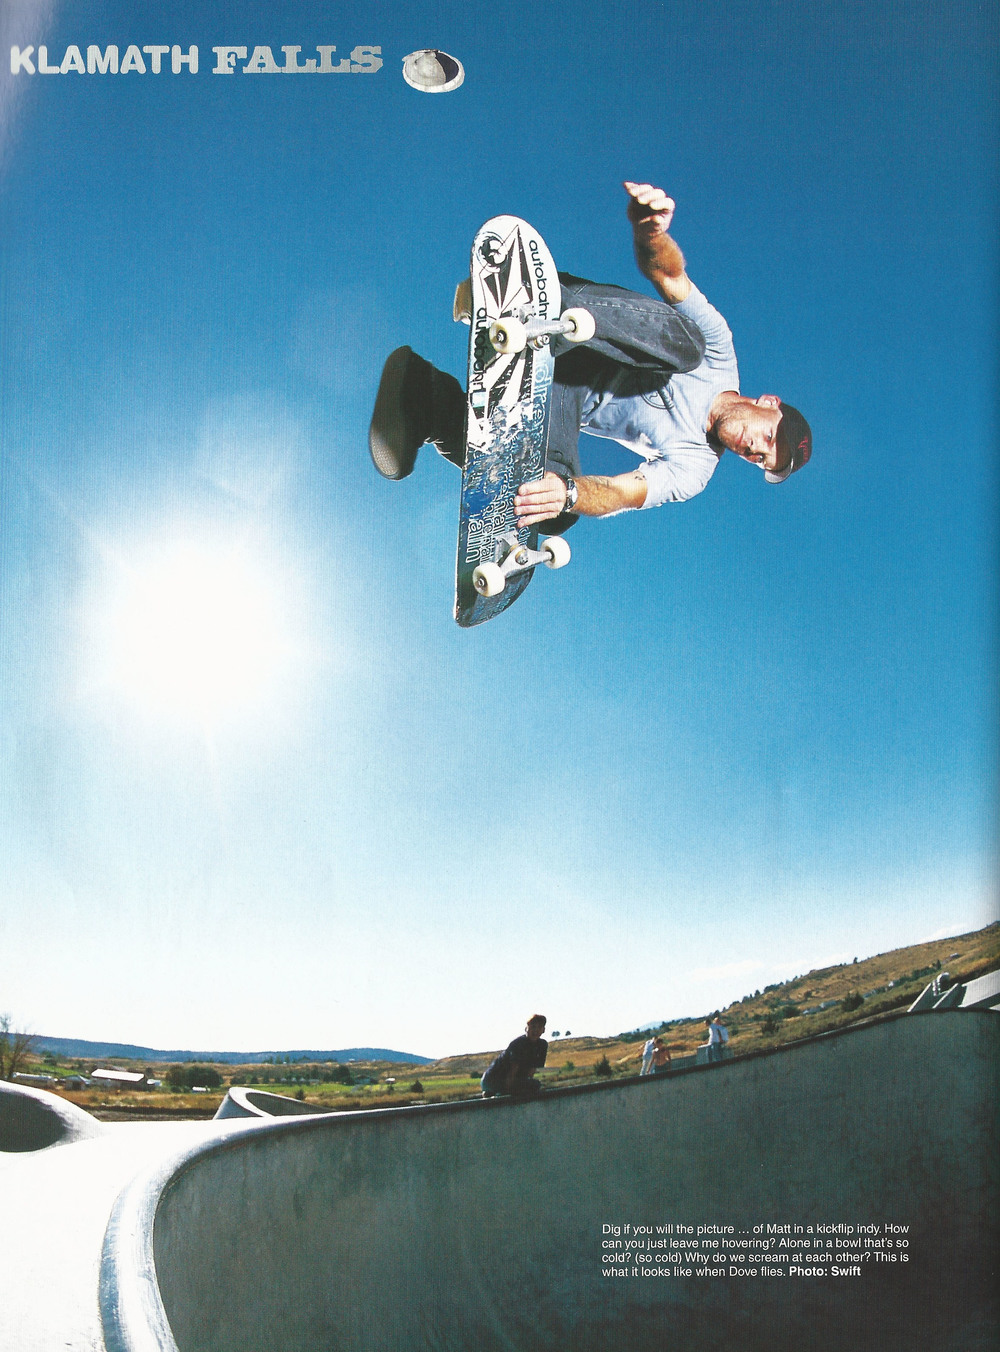 Matt, Klamath Falls, OR. The Skateboard Mag. Photo: Swift